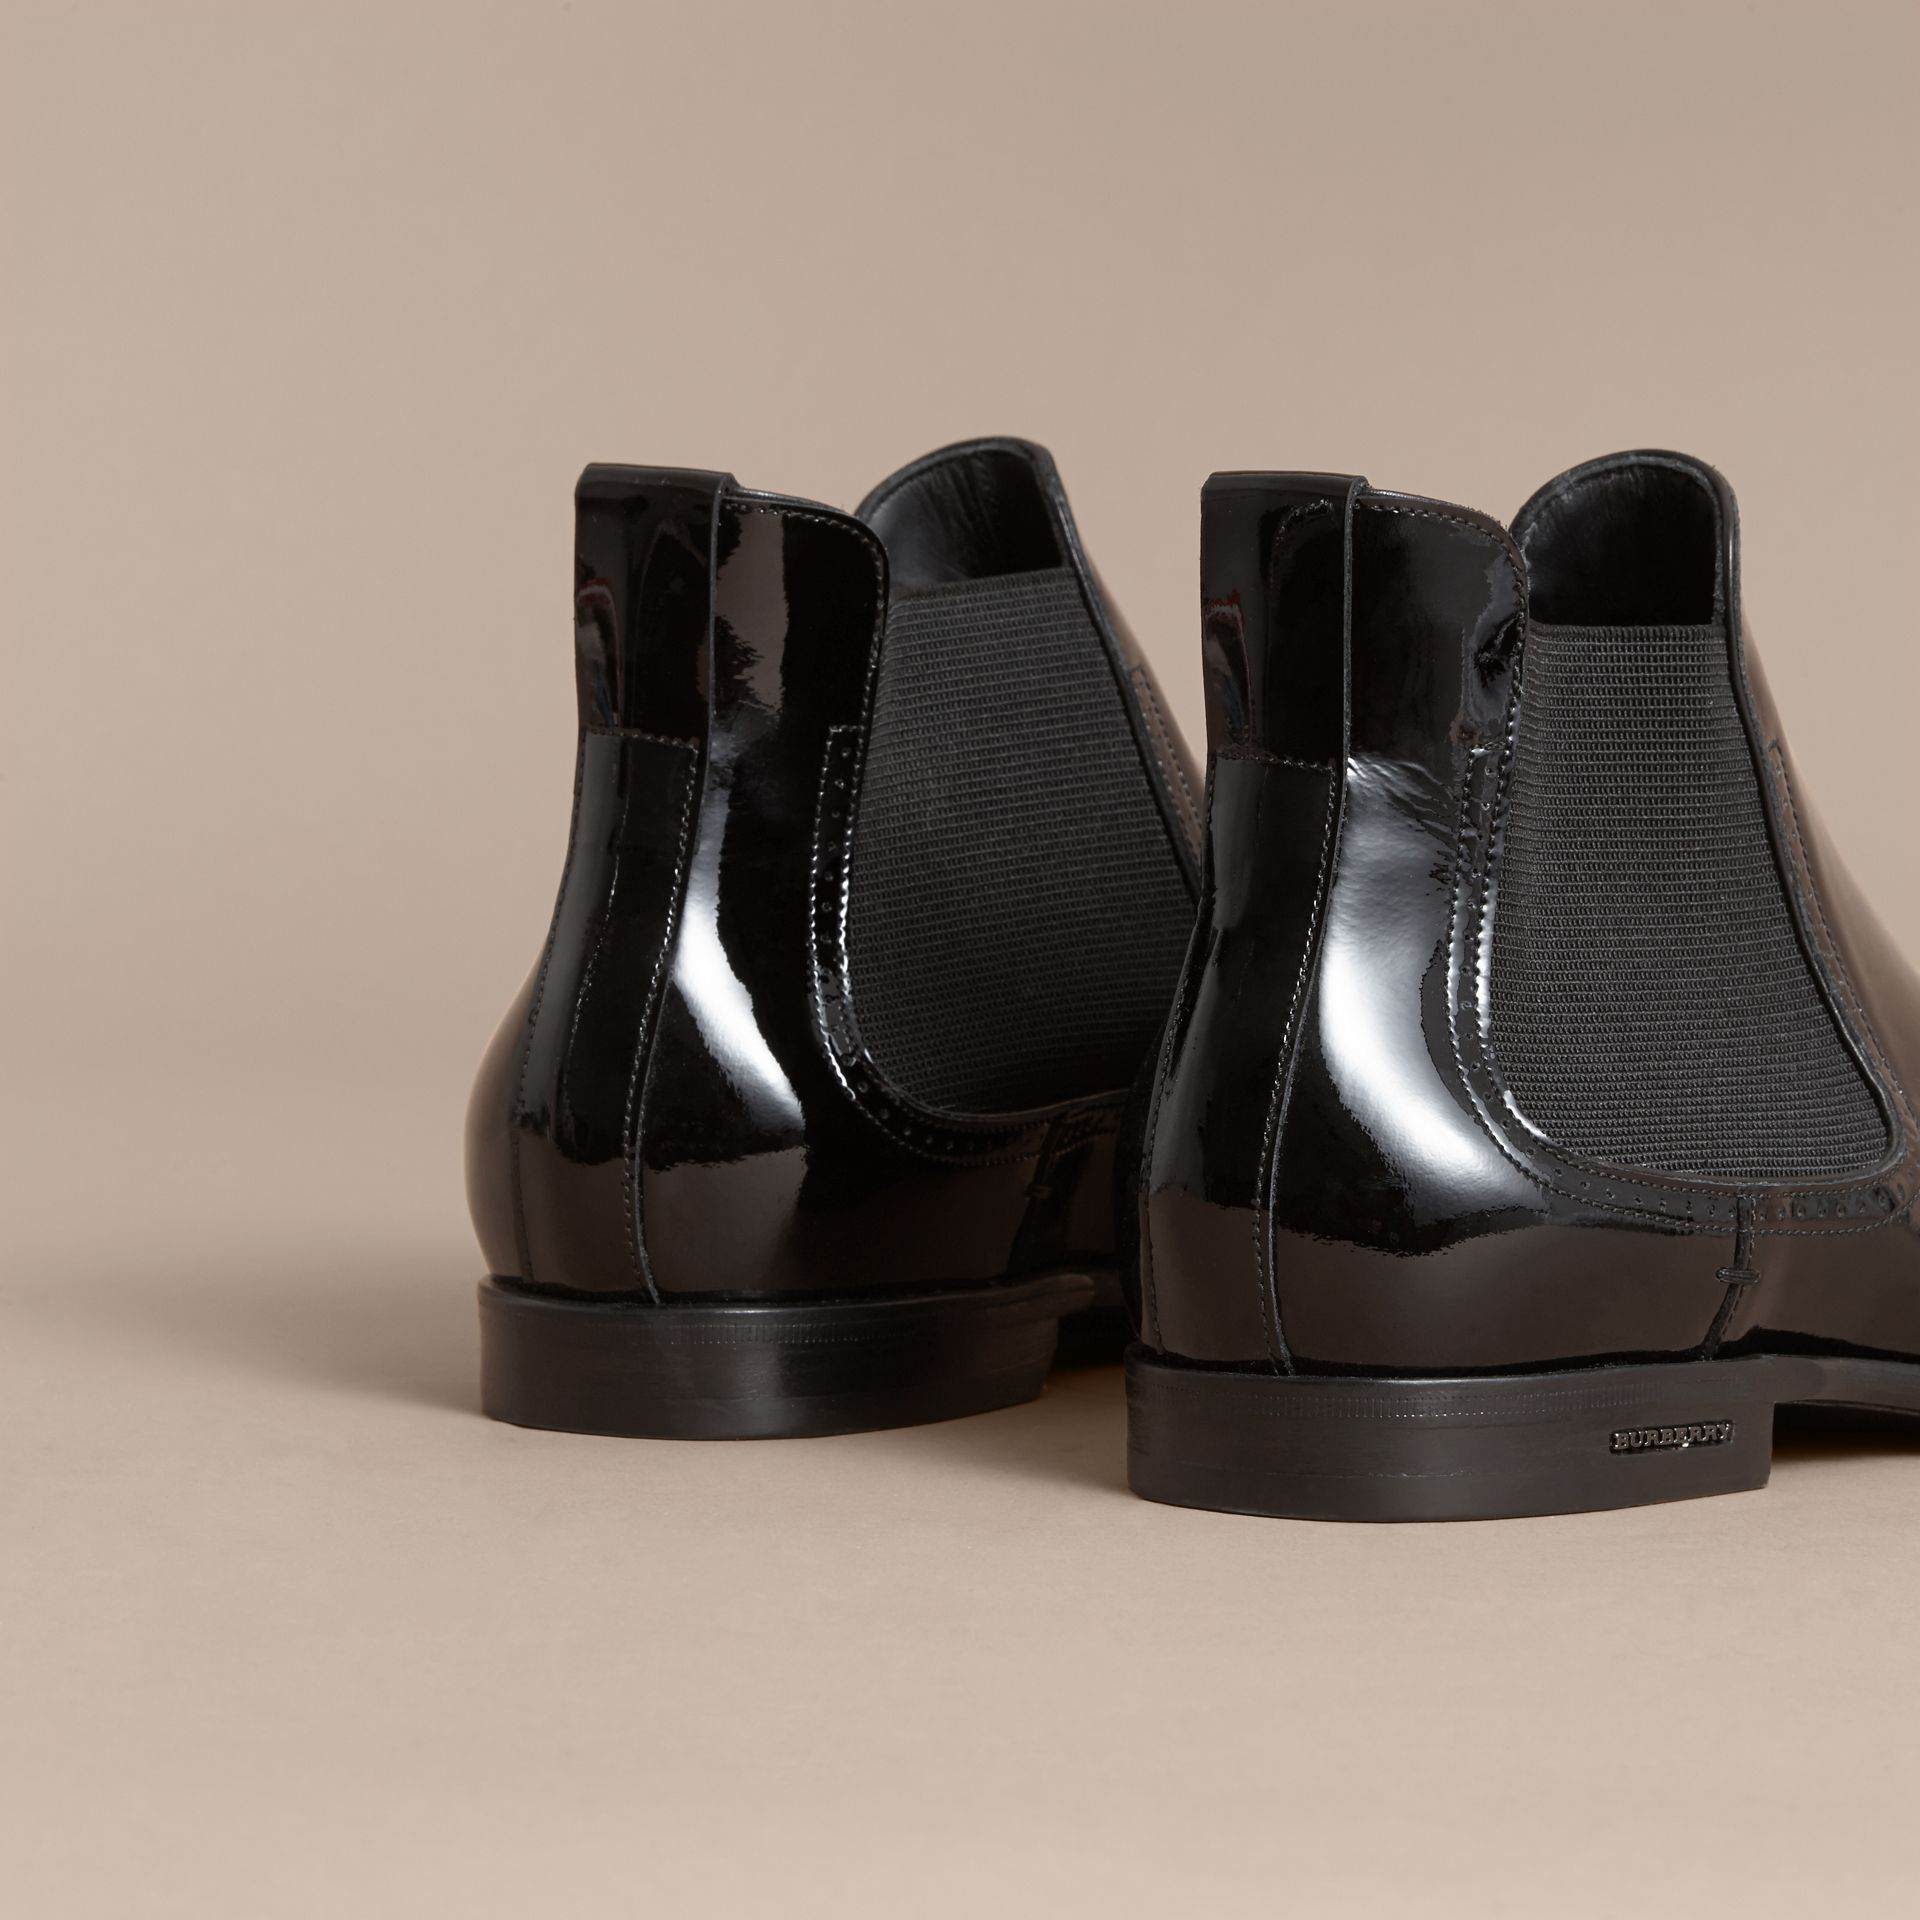 Polished Leather Chelsea Boots in Black - Men | Burberry Australia - gallery image 4